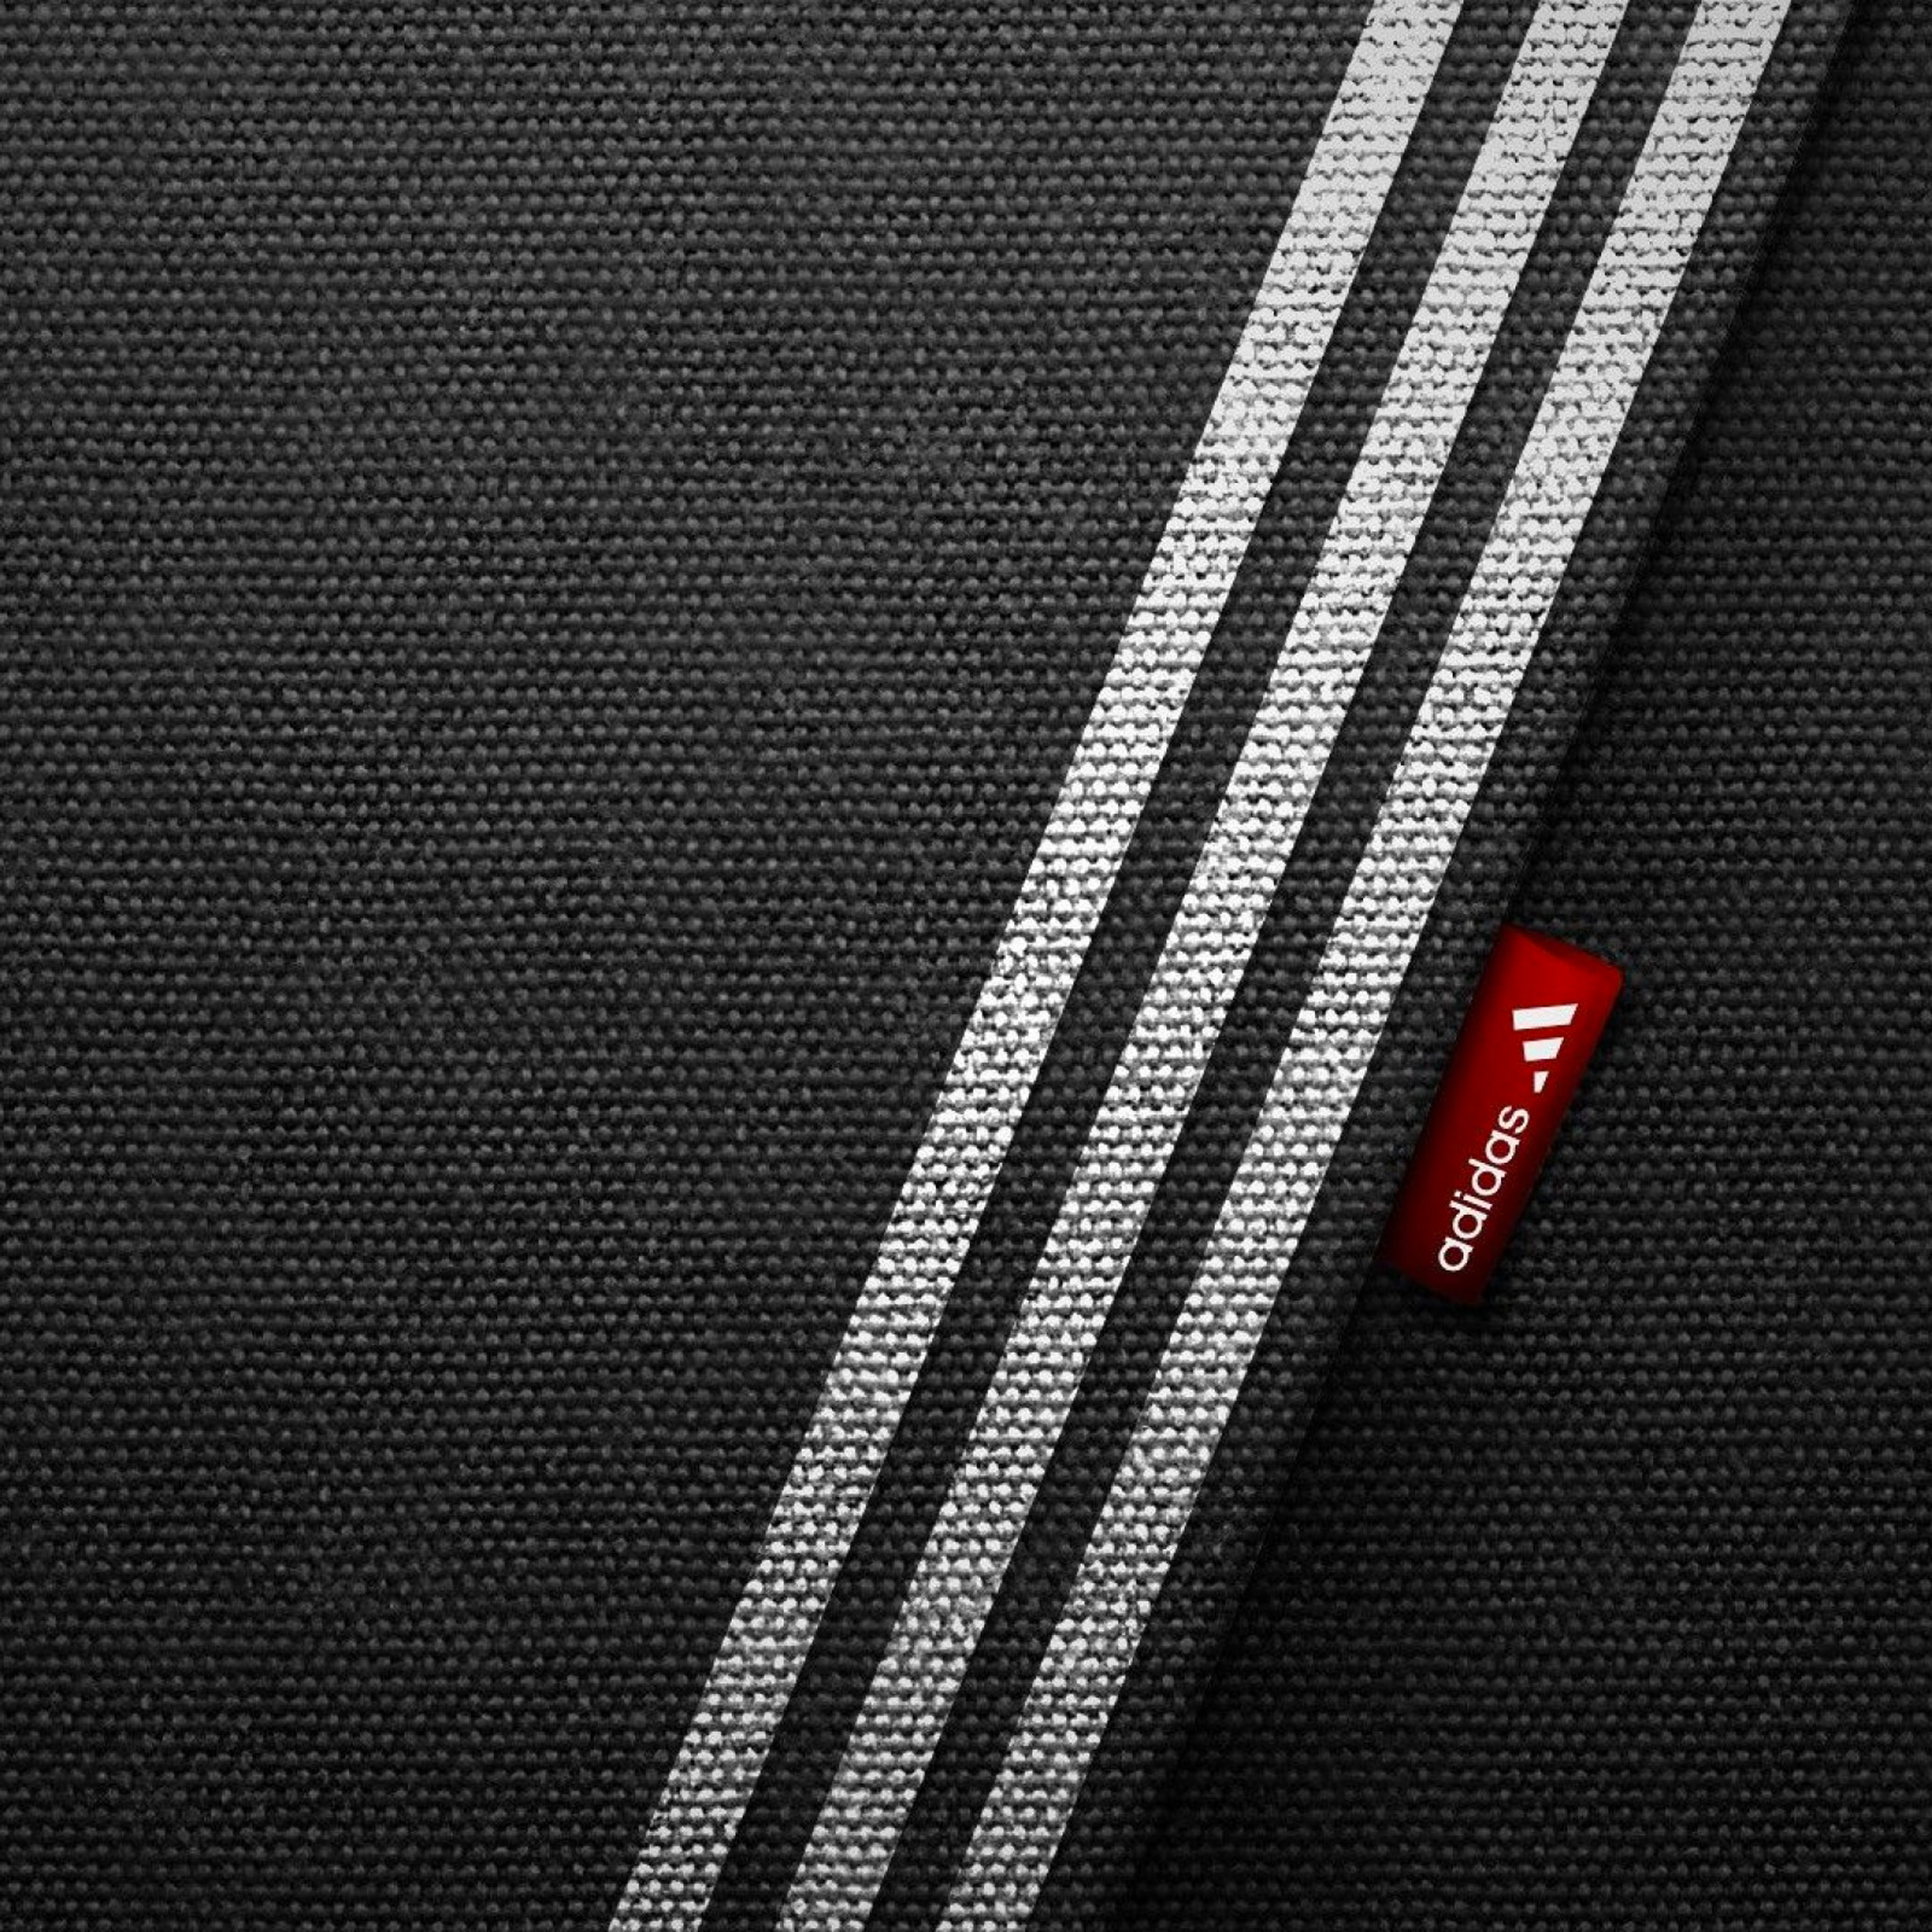 Adidas Brand 3Wallpapers iPad Adidas Brand   iPad